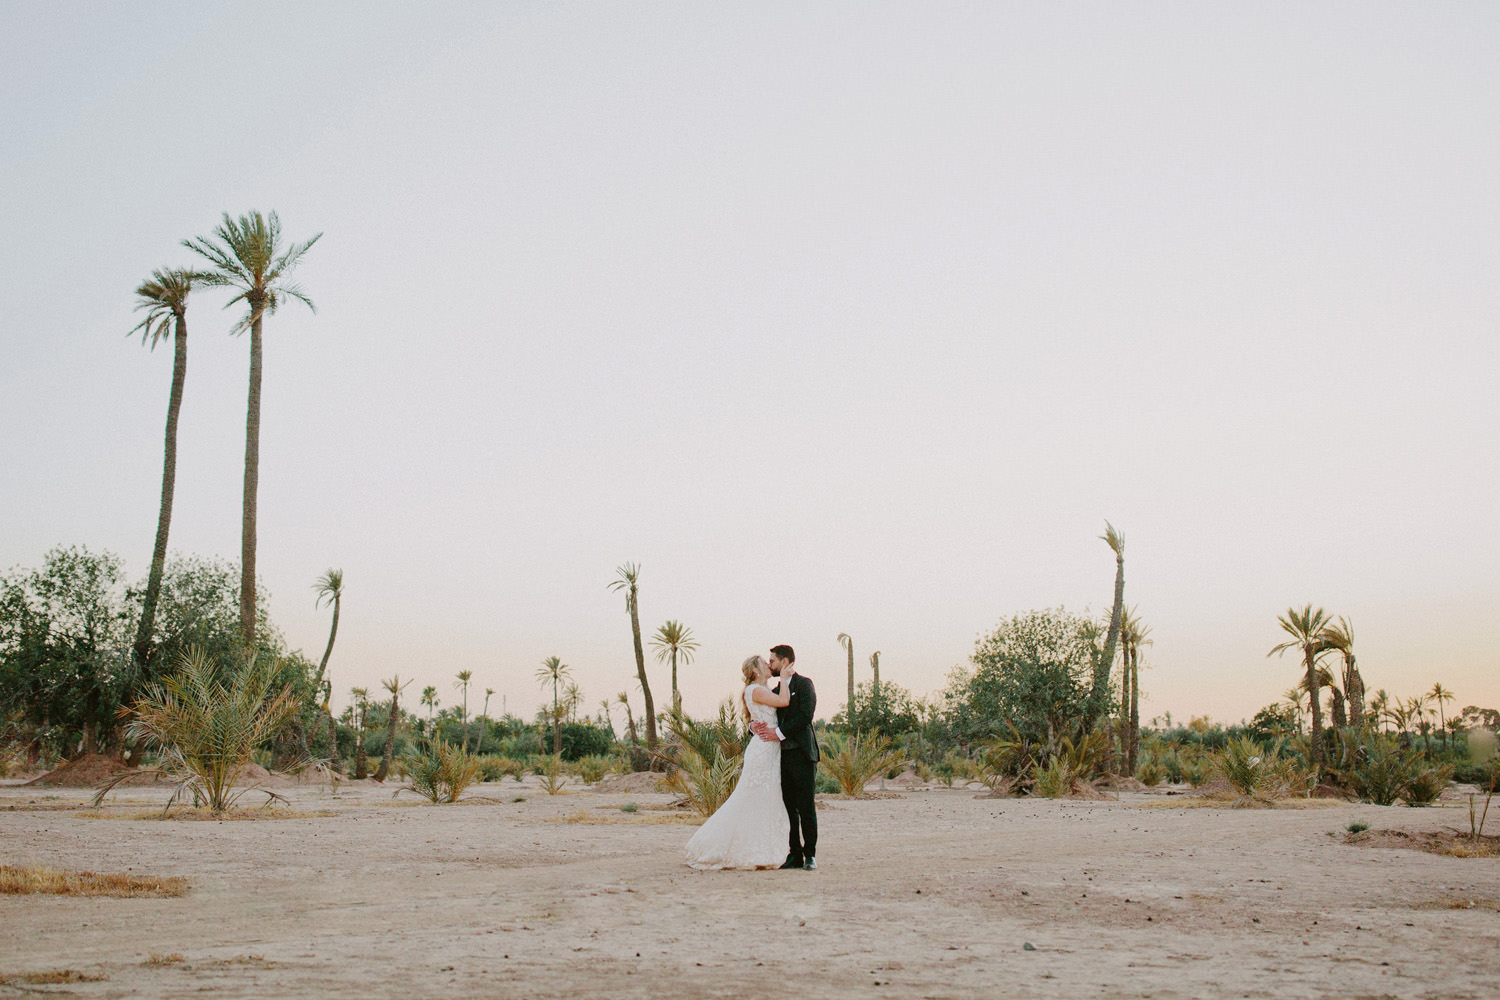 Bride and groom kiss in the Marrakech desert